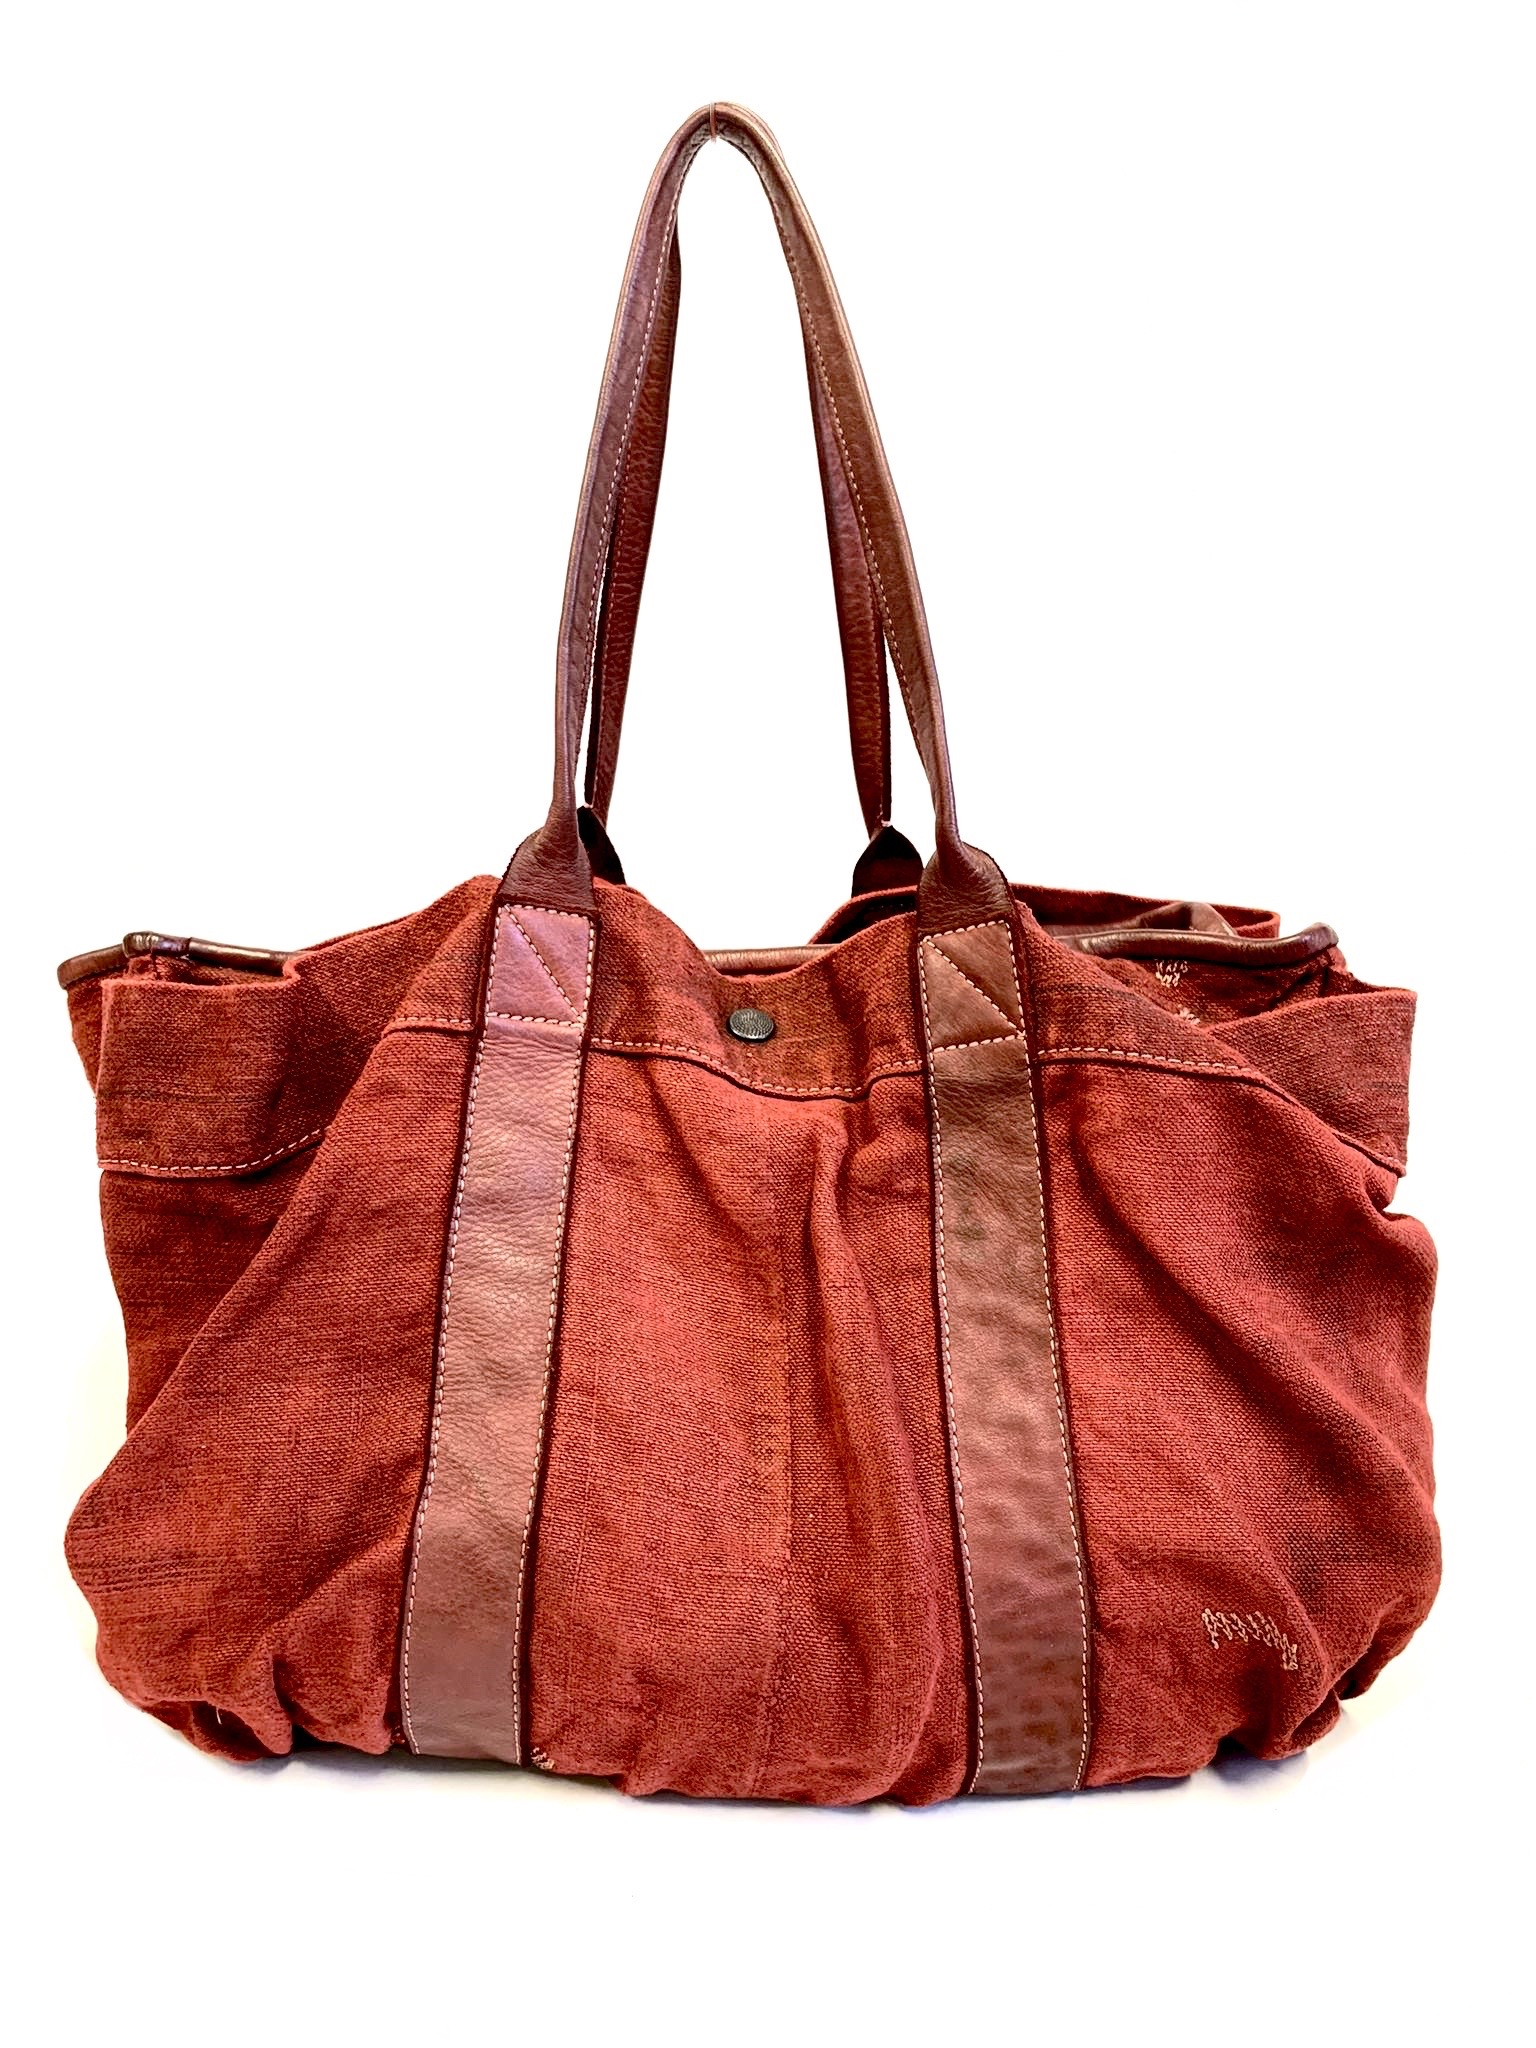 Distressed Tote Bag